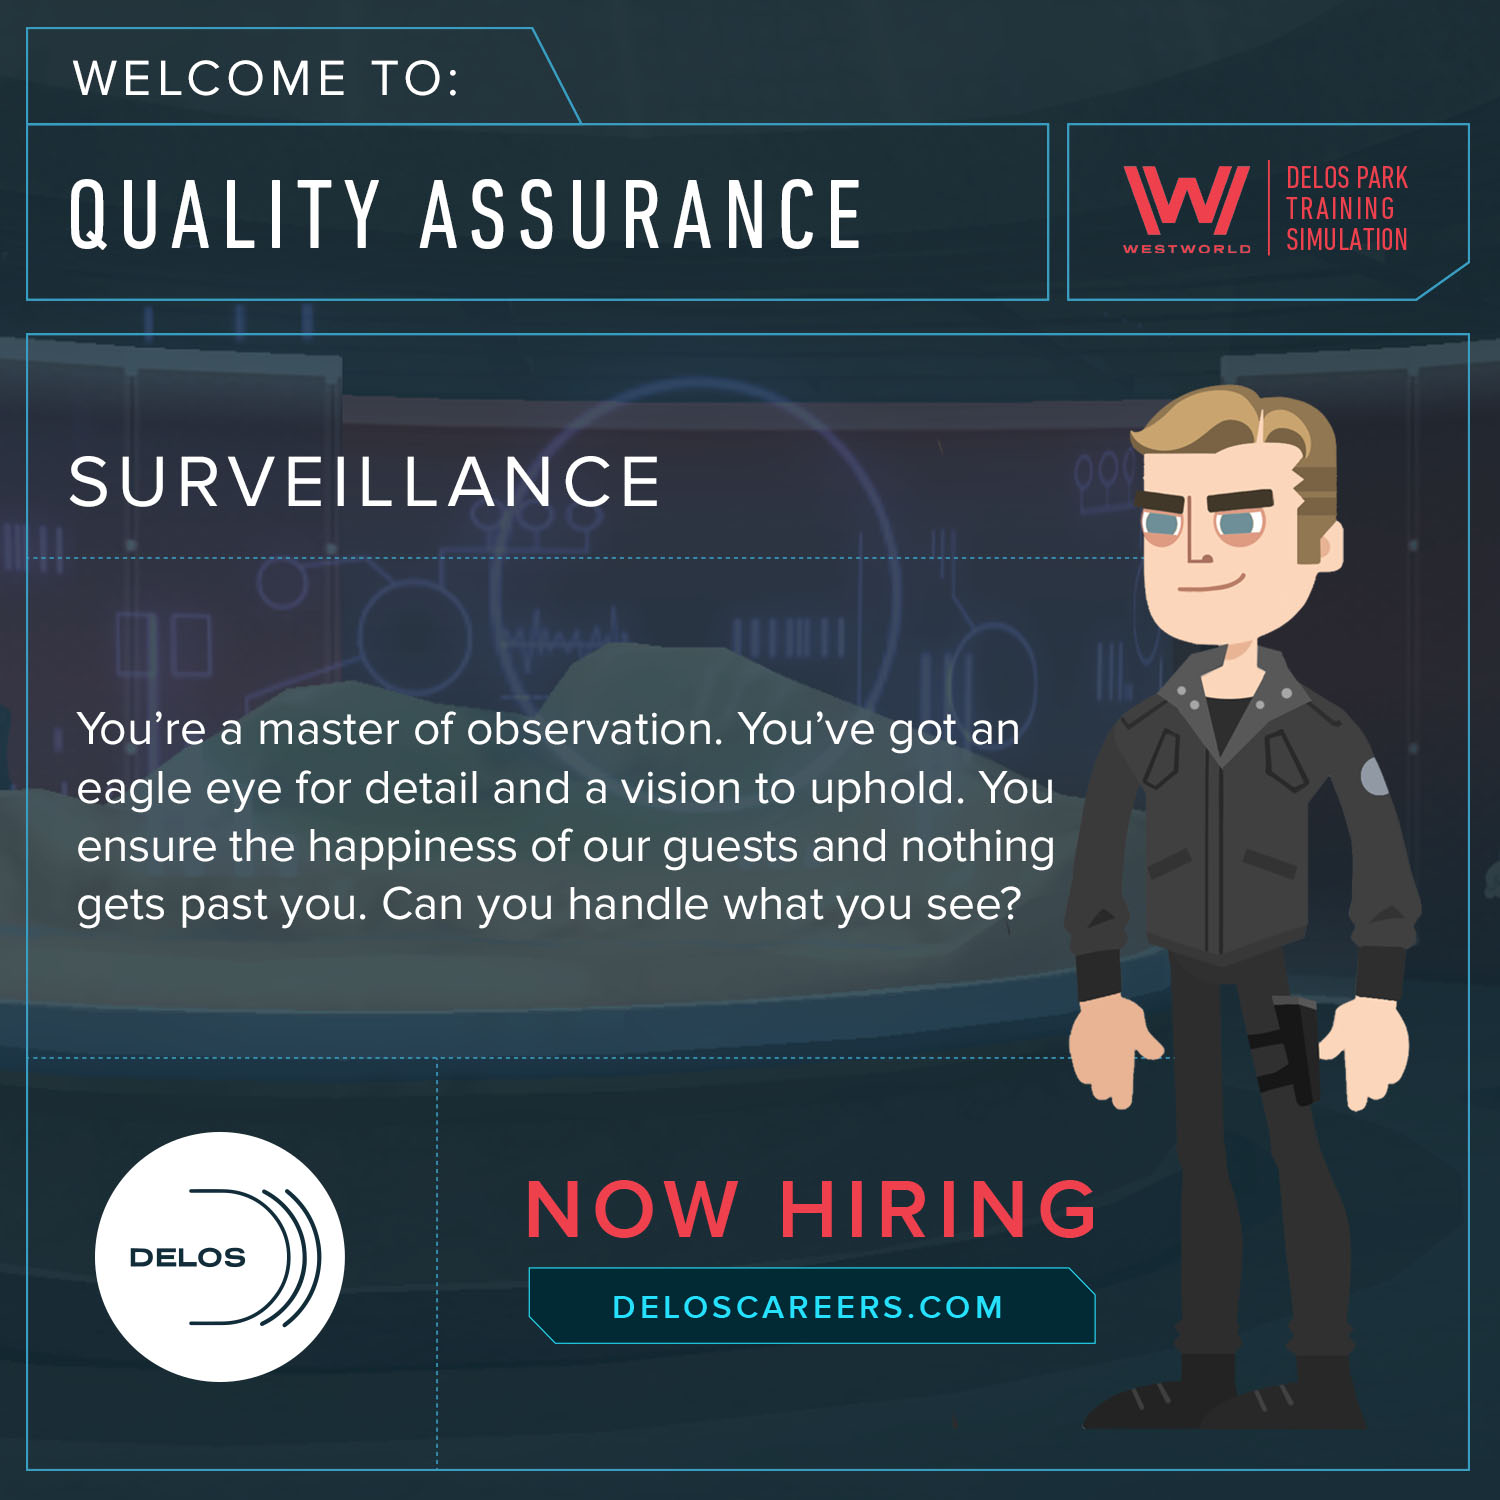 Placement Test OutputsQA - SURVEILLANCE.jpg